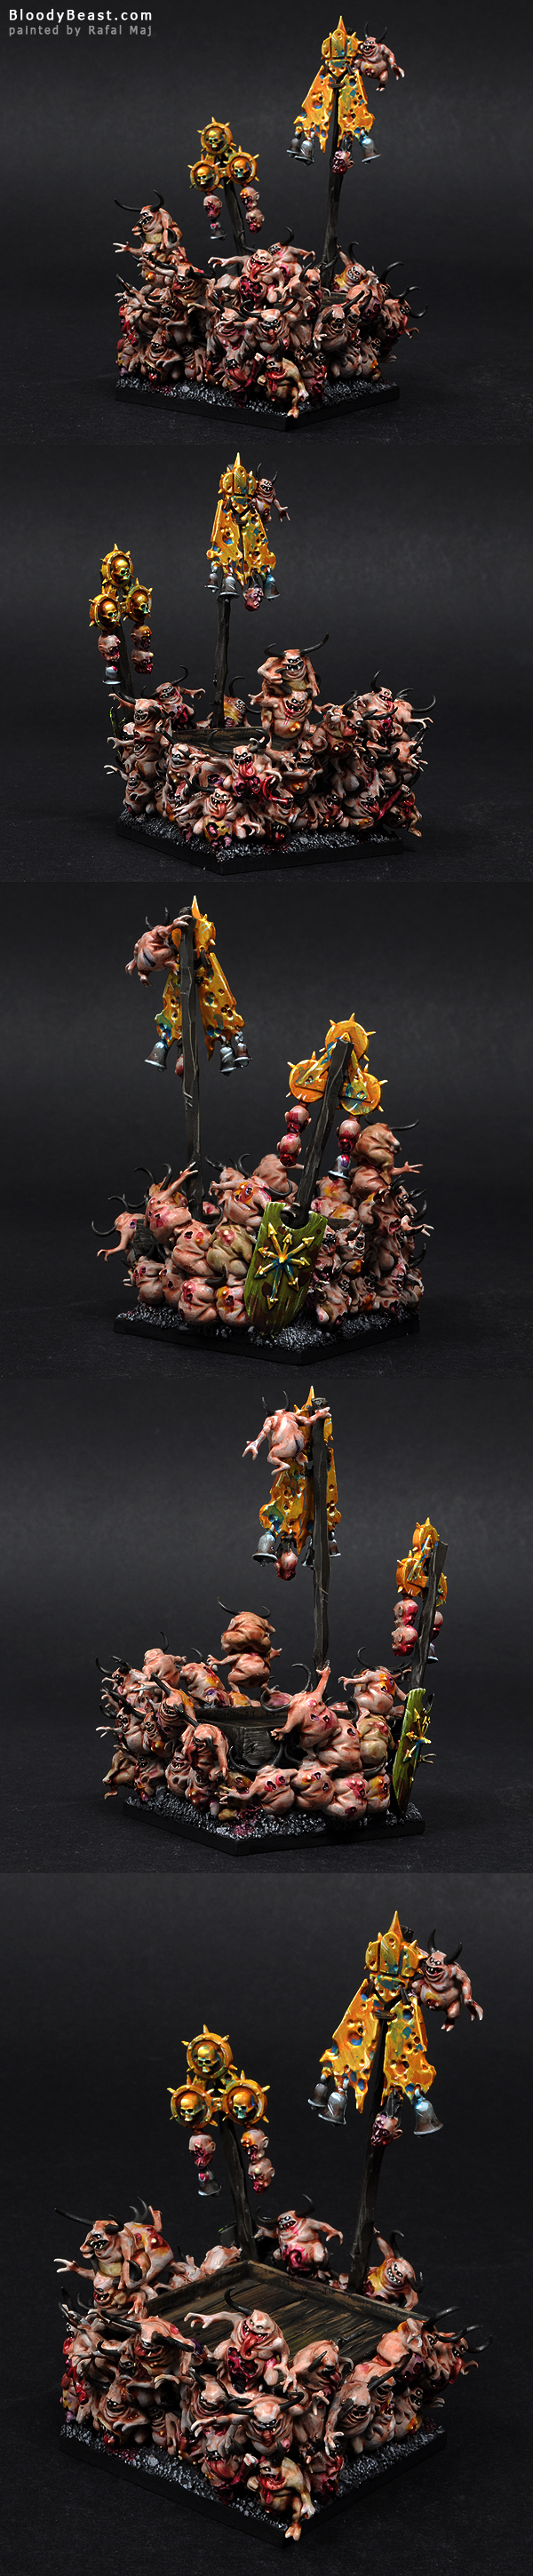 Palanquin of Nurgle painted by Rafal Maj (BloodyBeast.com)